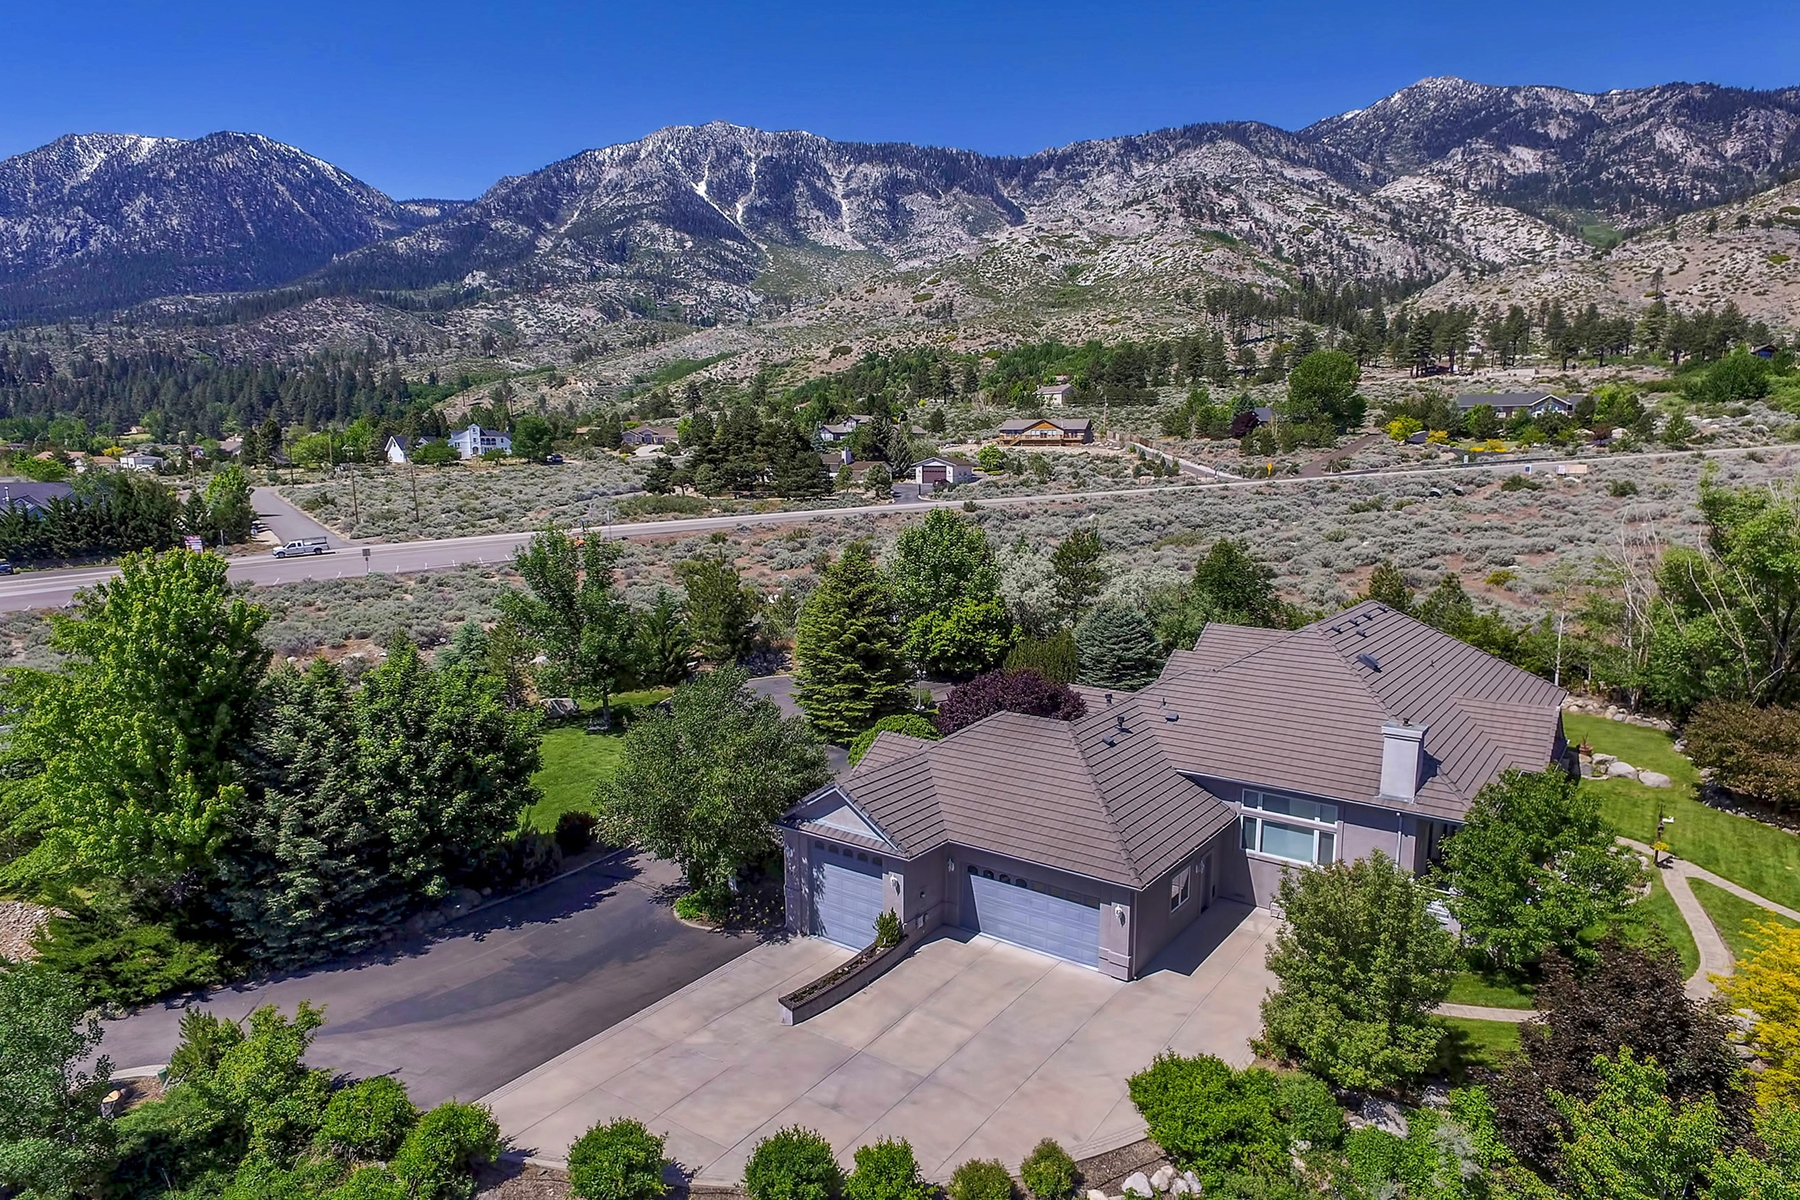 Single Family Home for Active at 220 Goa Way, Gardnerville, Nevada 220 Goa Way Gardnerville, Nevada 89460 United States